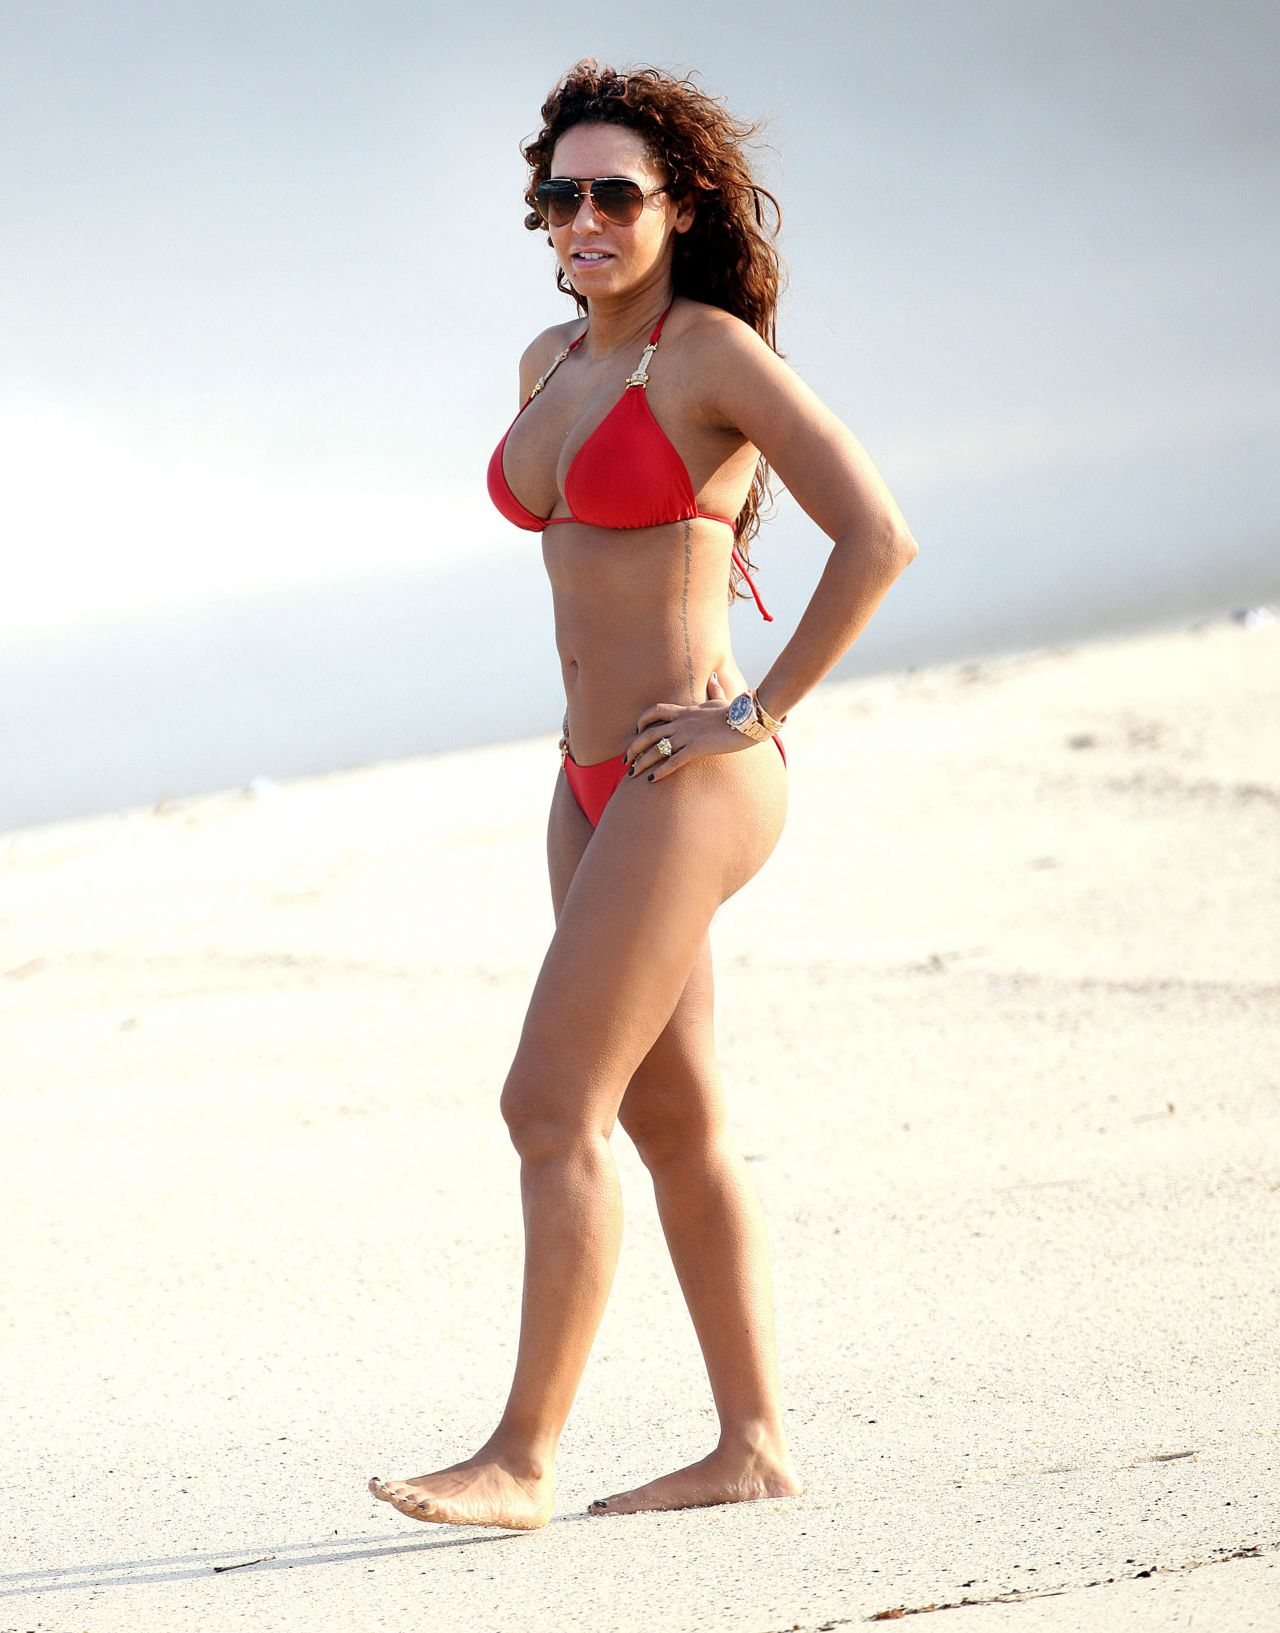 Melanie Mel B Brown - wearing a bikini at a beach in Sydney 10/29/13